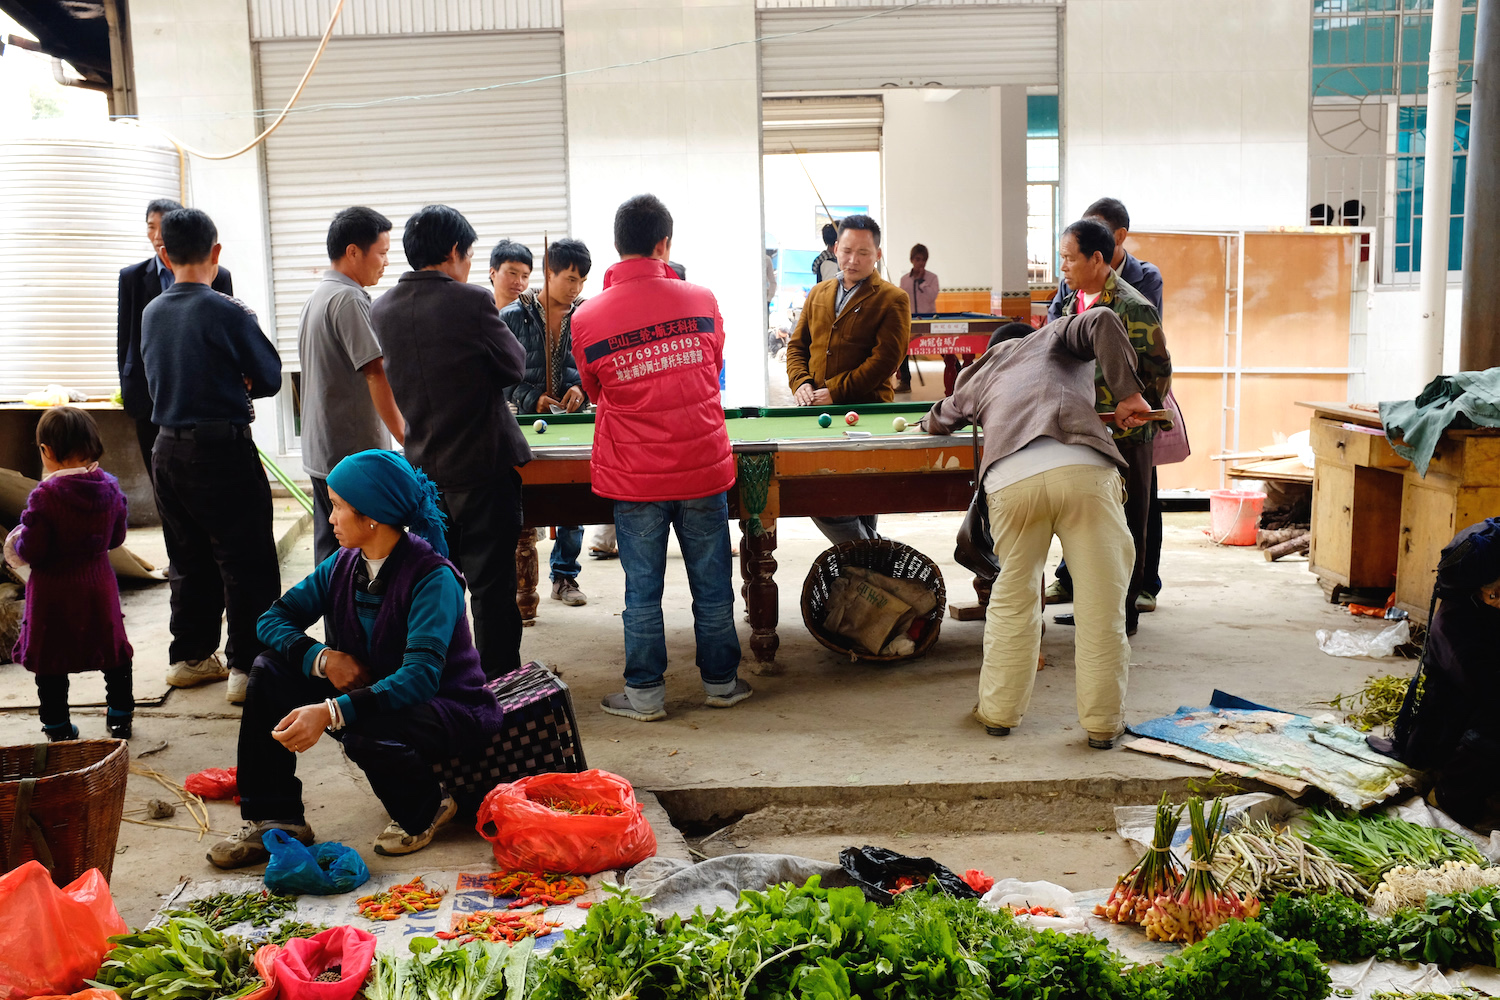 The men relax while the women sell vegetables